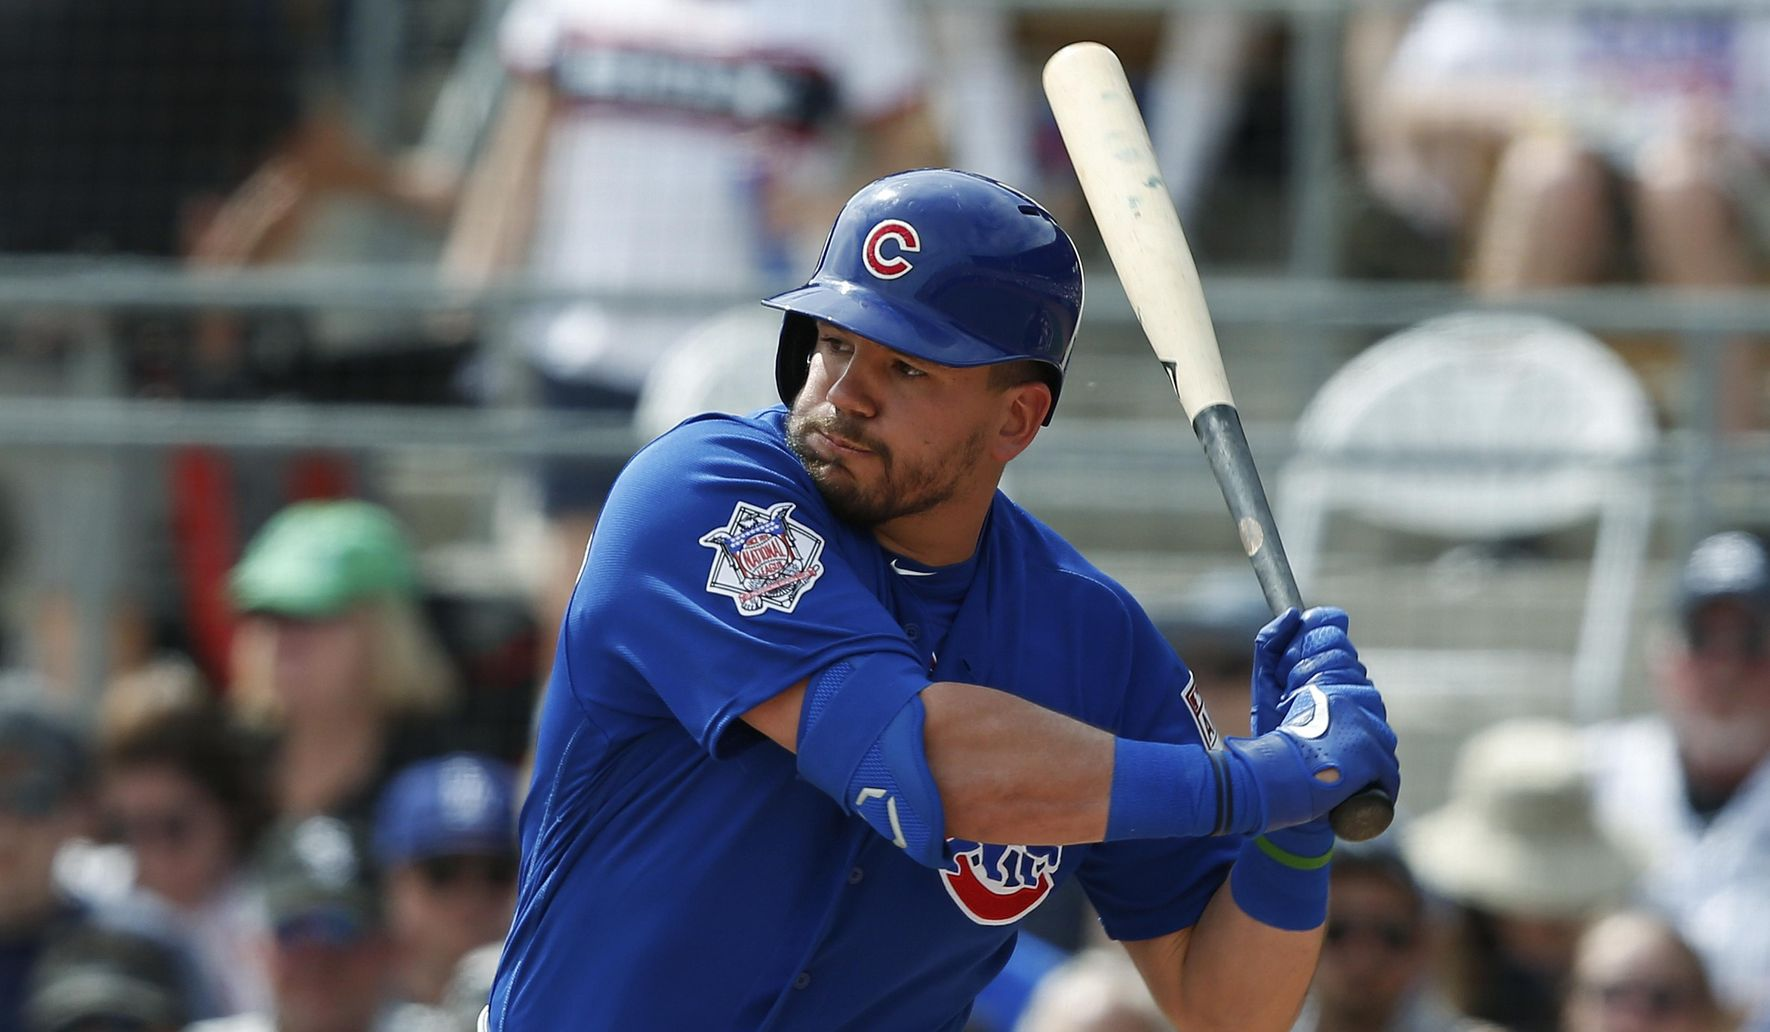 Cubs_moves_baseball_05598_c0-0-3784-2206_s1770x1032